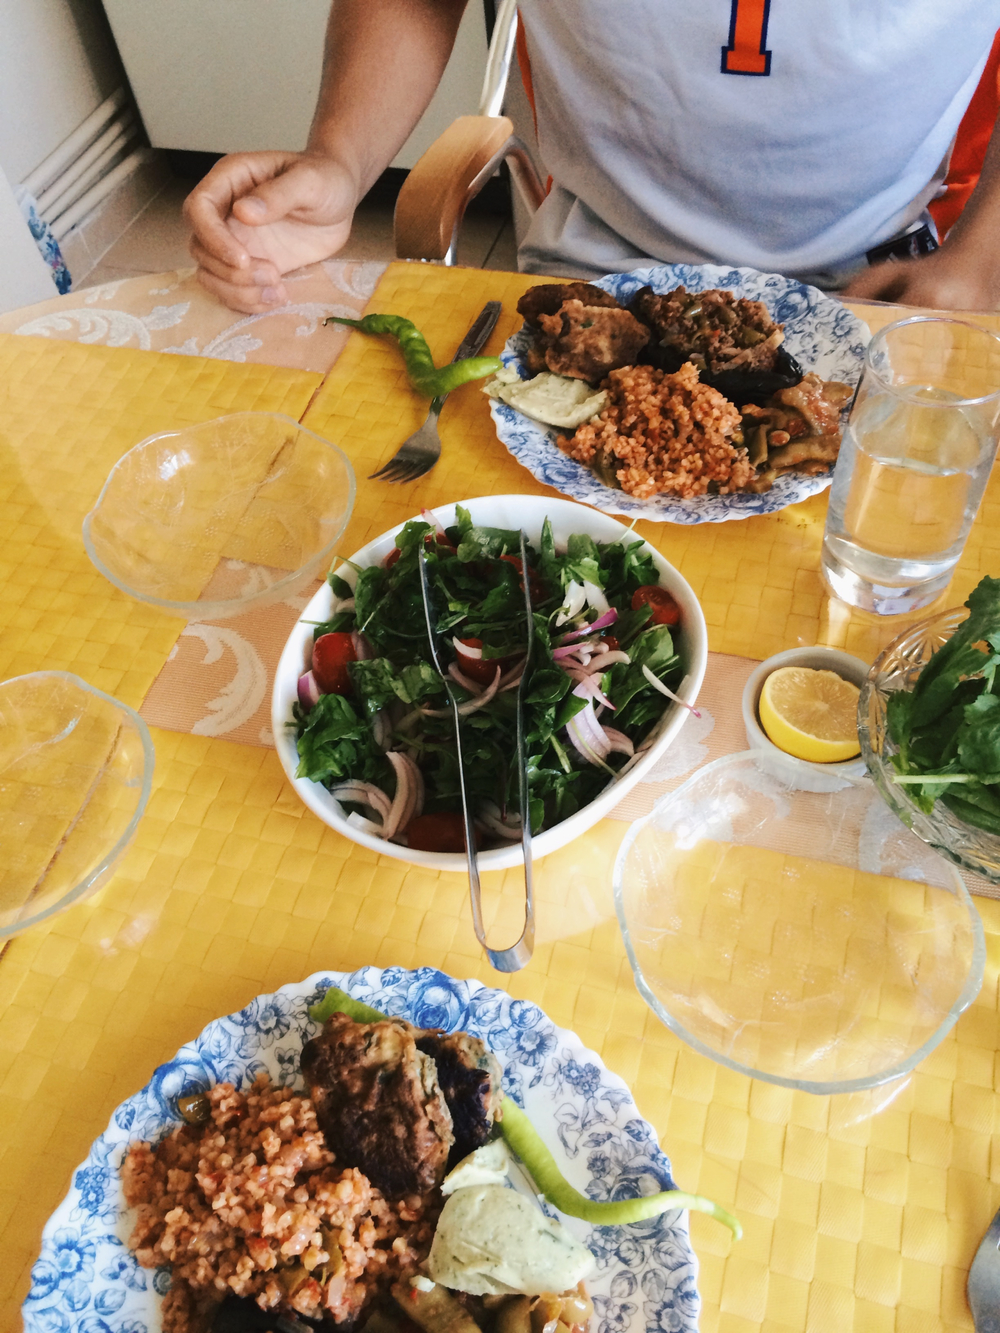 The beautiful food we gorged on our second day in Turkey containing shepards salad, fresh peppers, cress, fava, dolma, mücver and more.